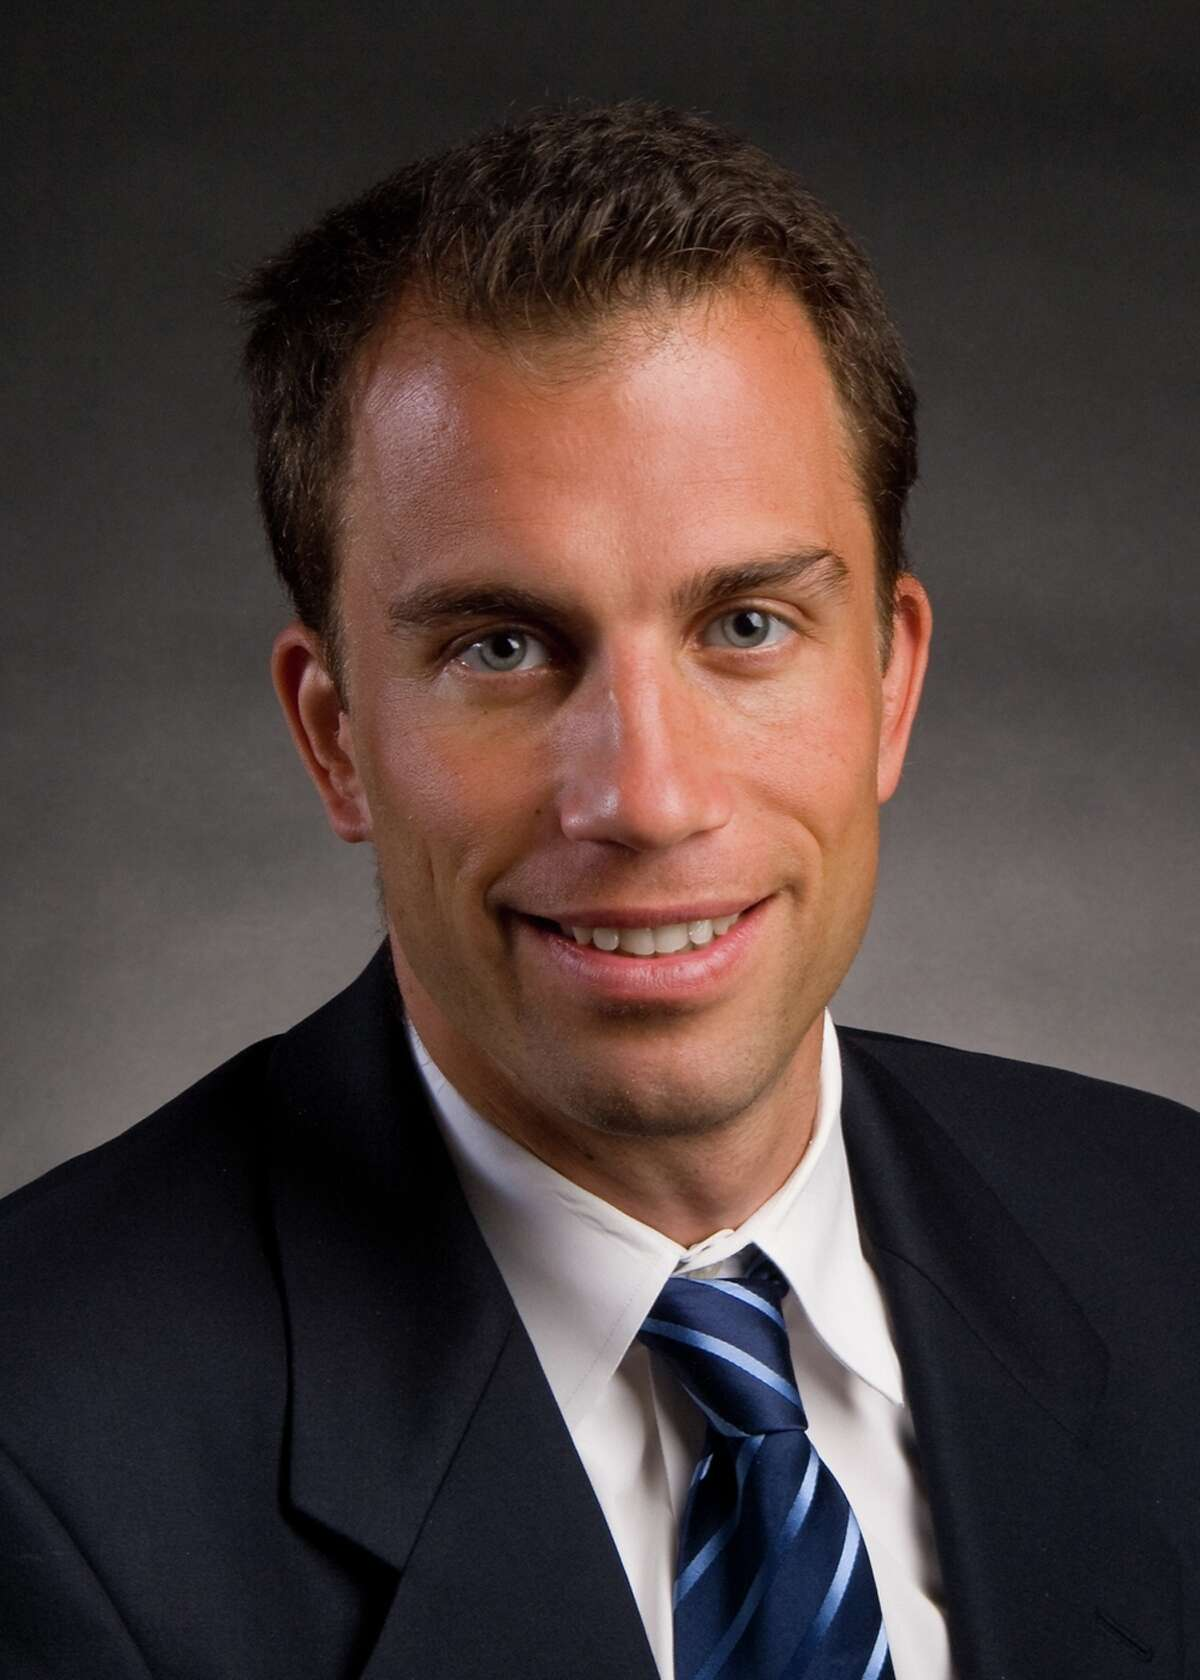 Dr. Andras Heczey, pediatric oncologist with Baylor College of Medicine and the Texas Children's Cancer Center.